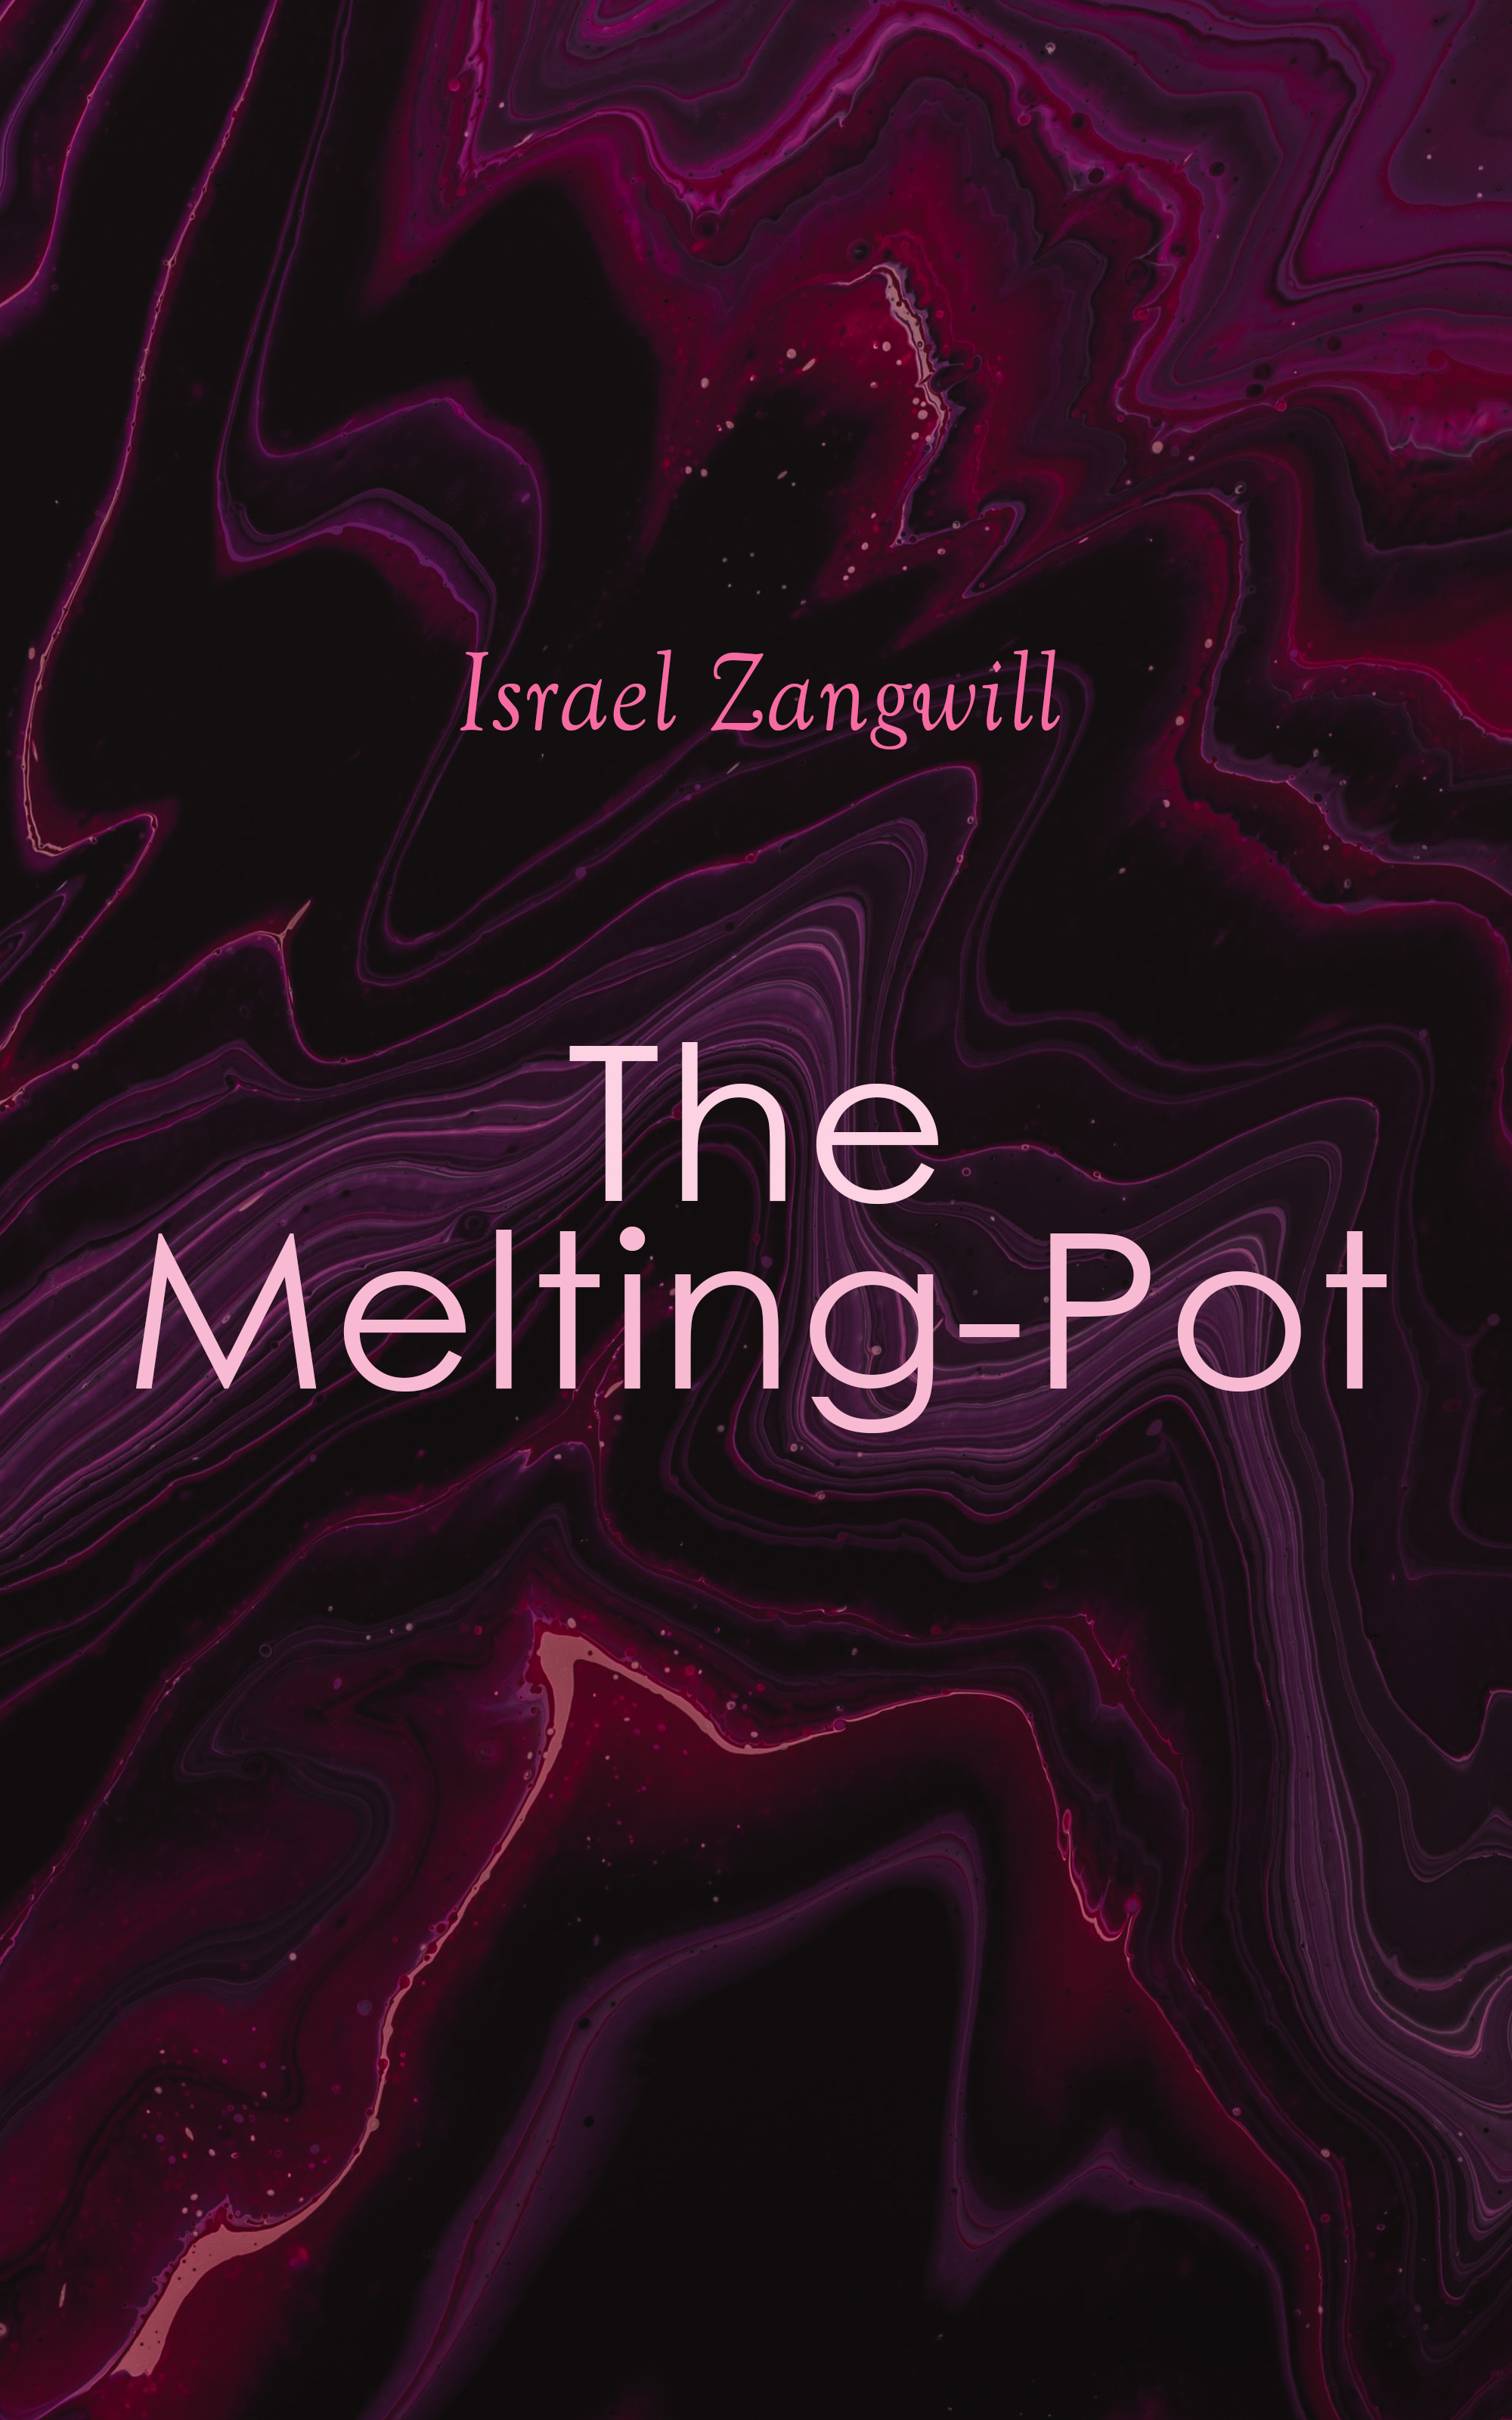 Israel Zangwill The Melting-Pot ethnic emails the jewish connection